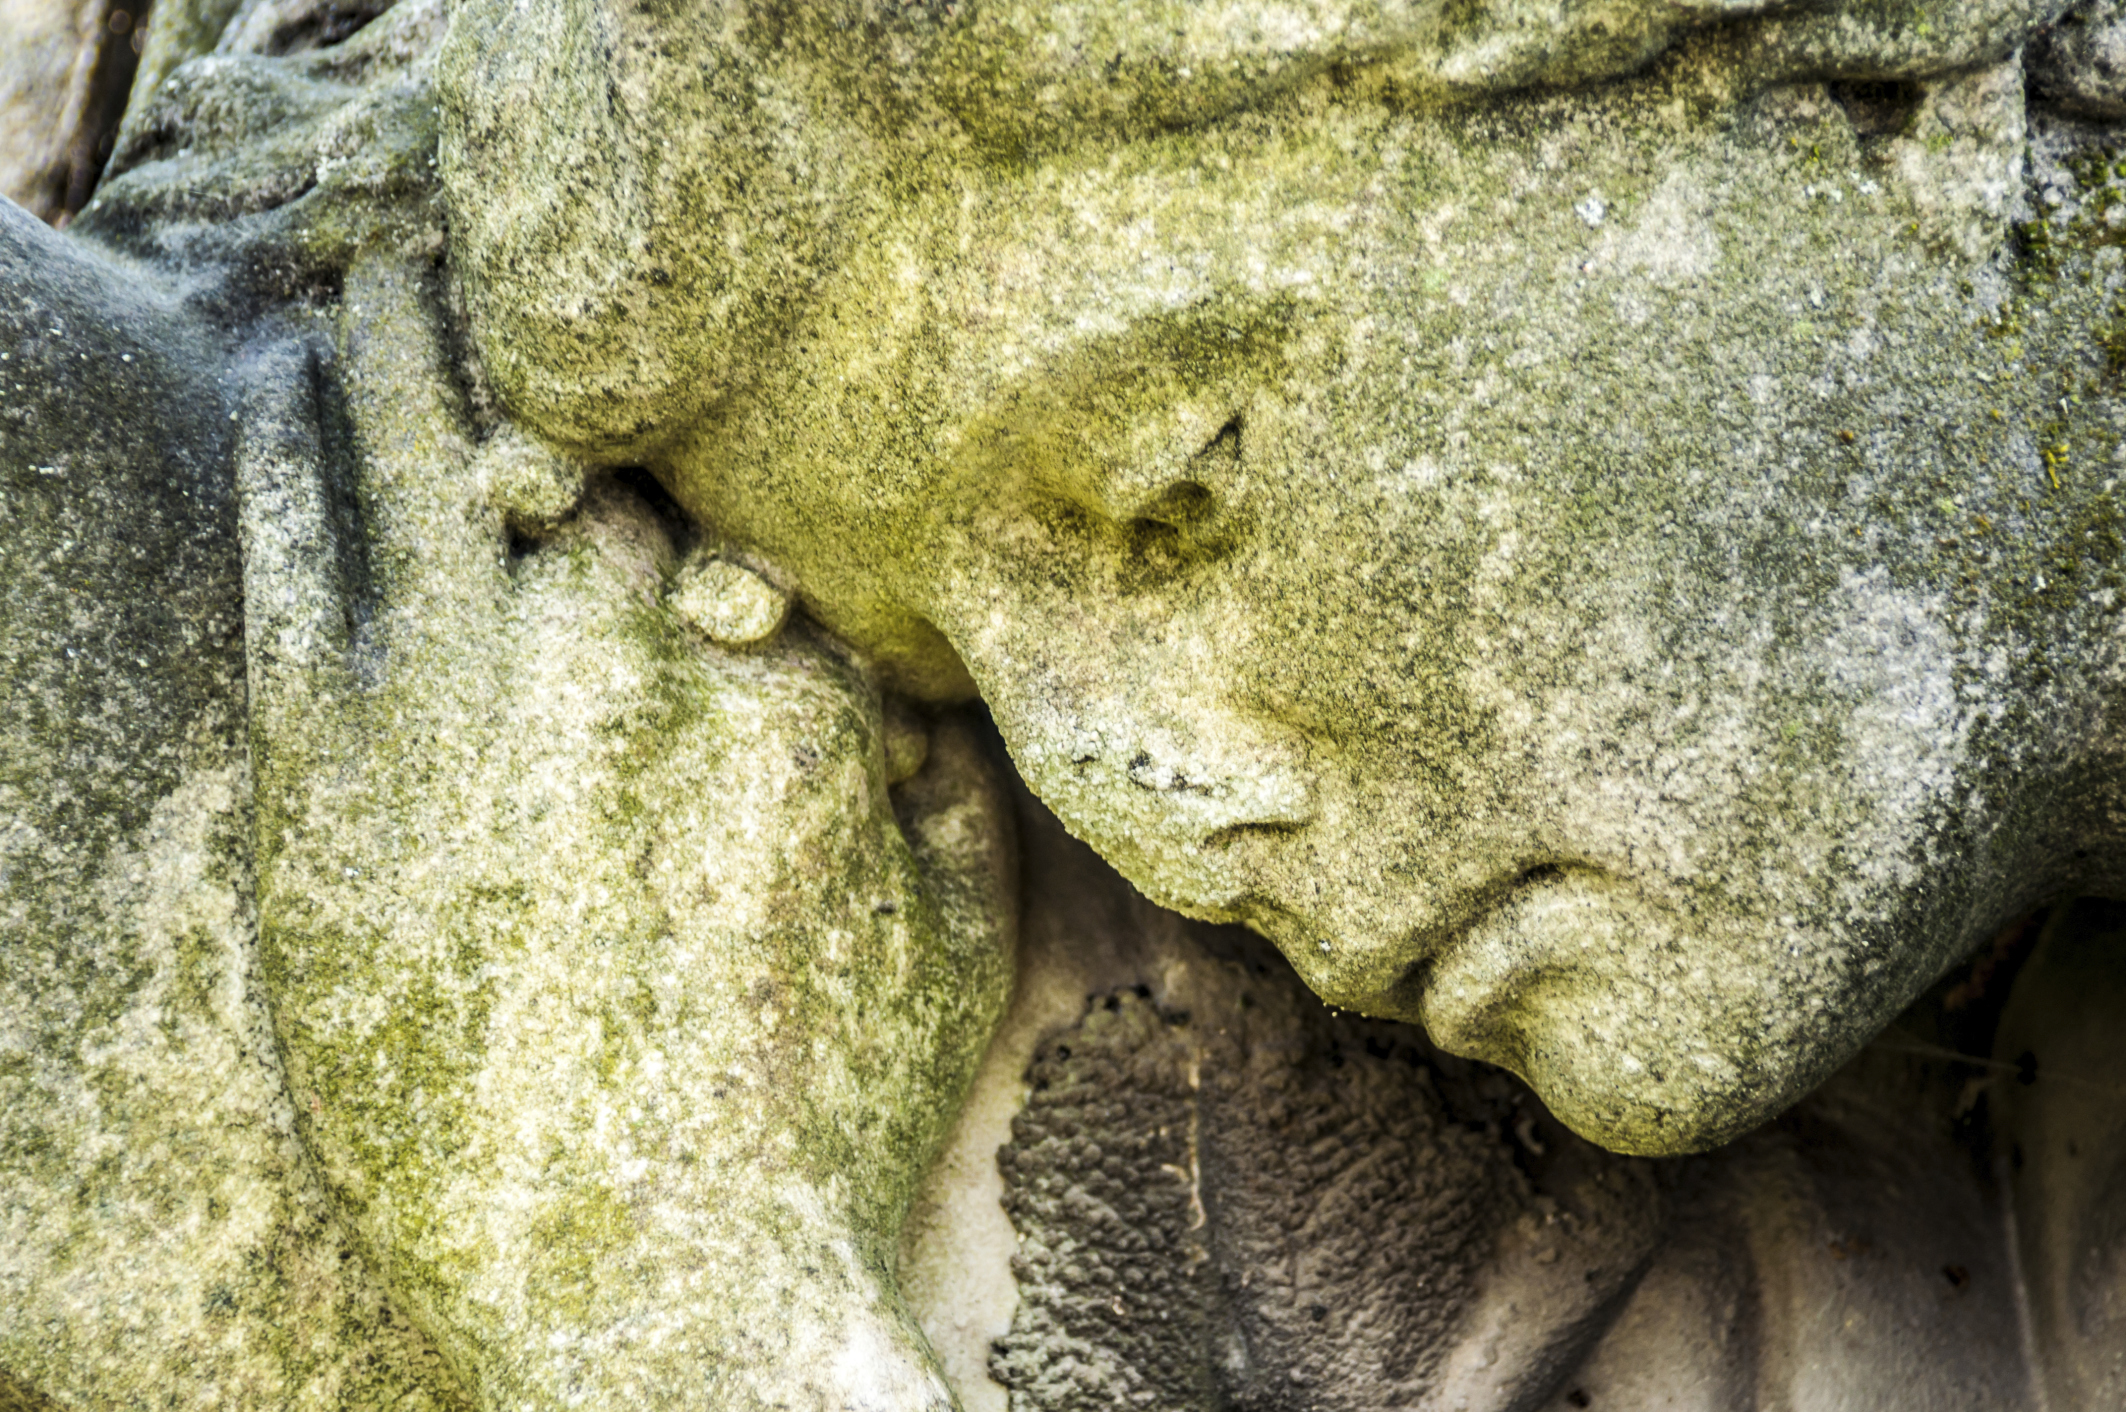 Sad stone figure in a graveyard